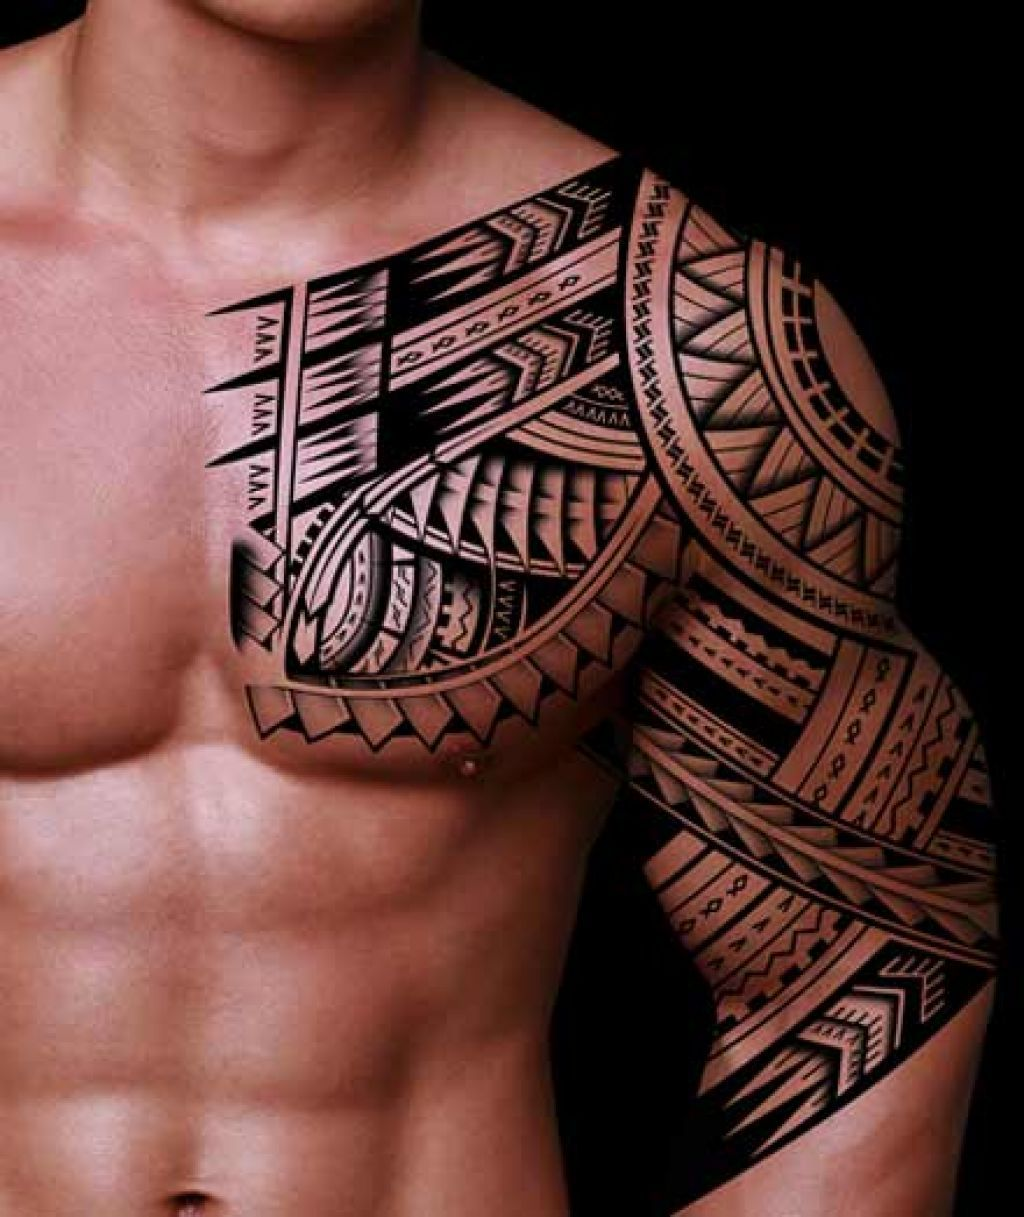 Tattoo ideas for guys half sleeve half sleeve tribal tattoo designs for men  тату на плече